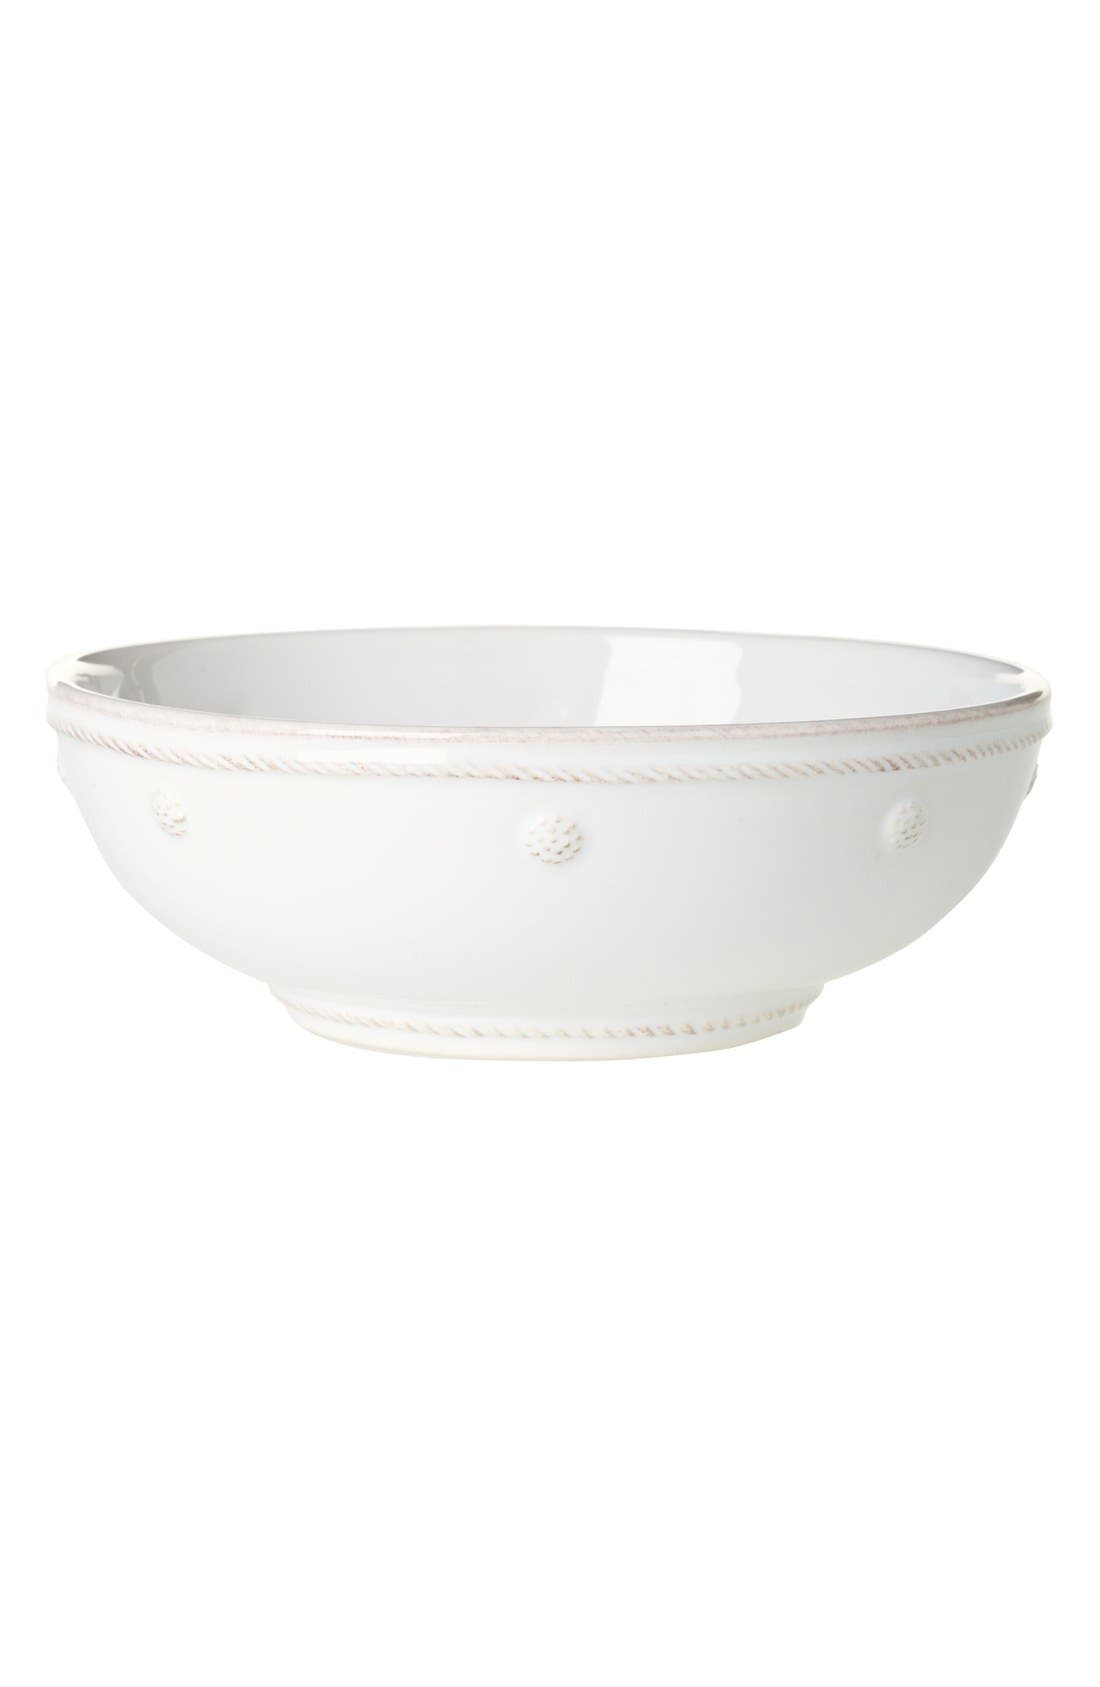 'Berry and Thread' Coupe Pasta Bowl,                             Main thumbnail 1, color,                             WHITEWASH